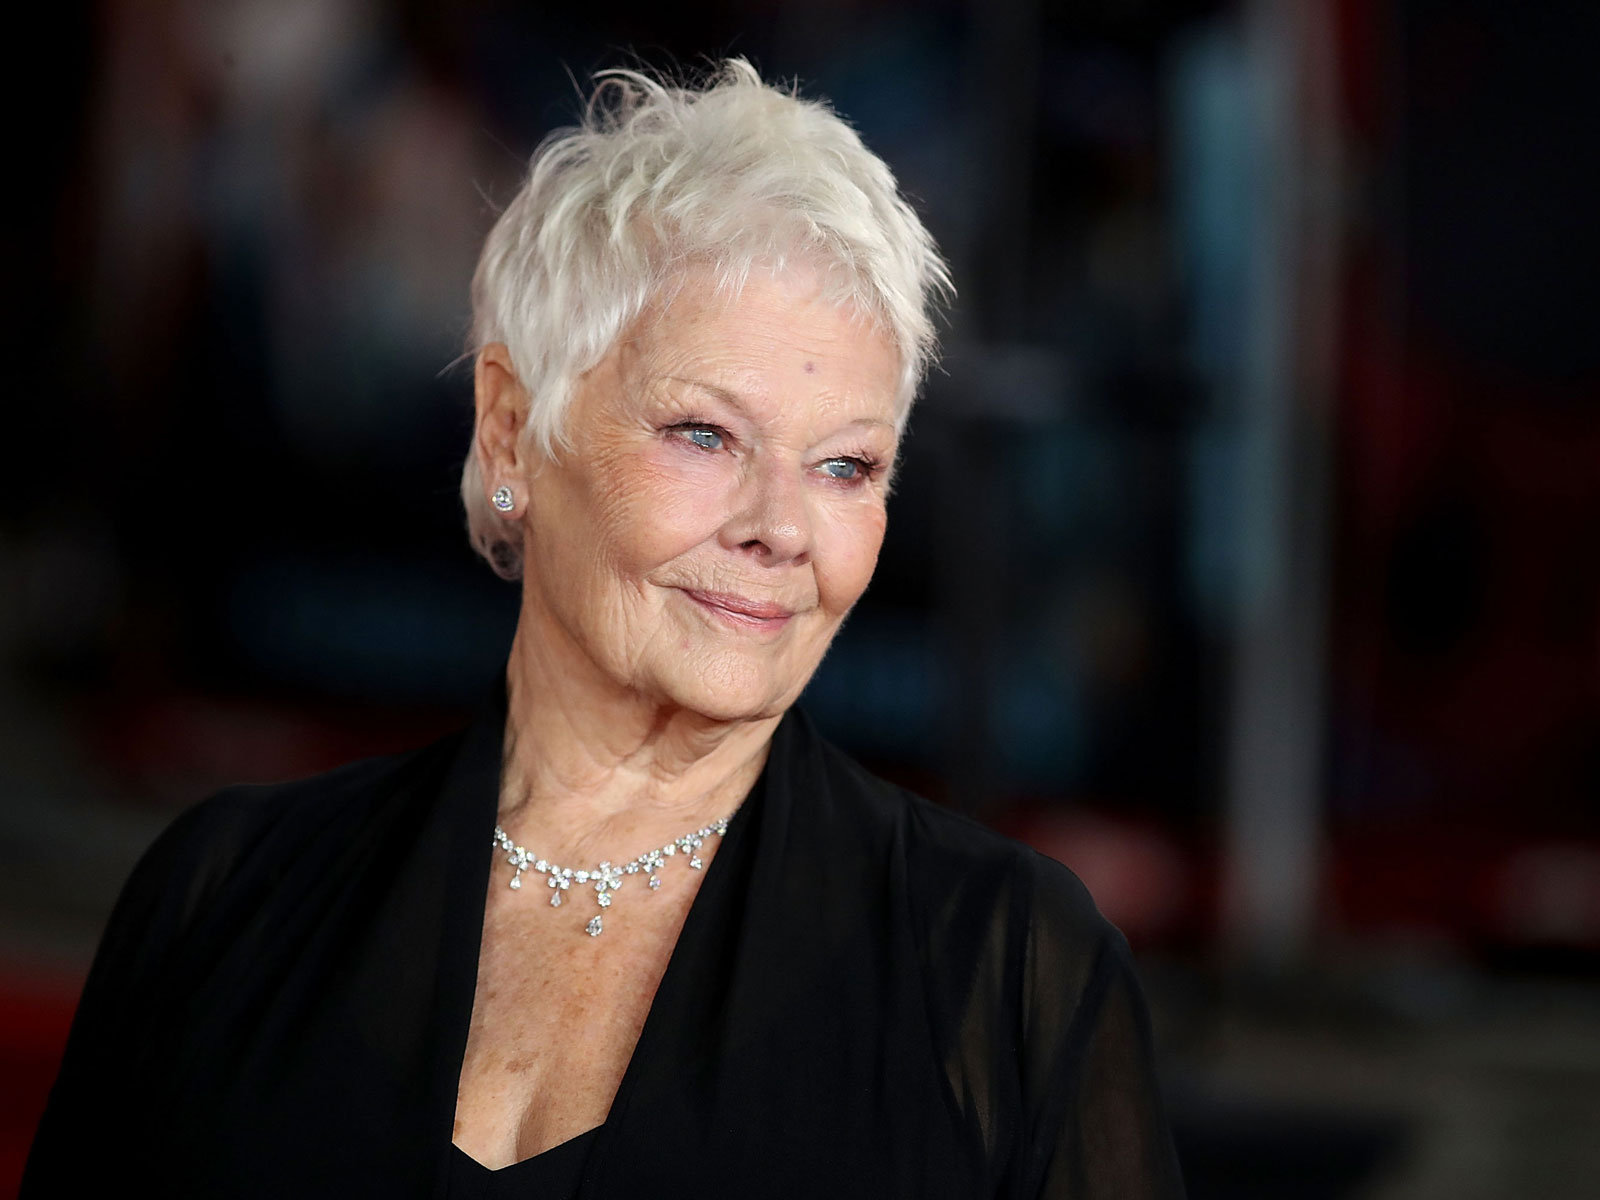 dame-judi-dench-beer-FT-BLOG1119.jpg